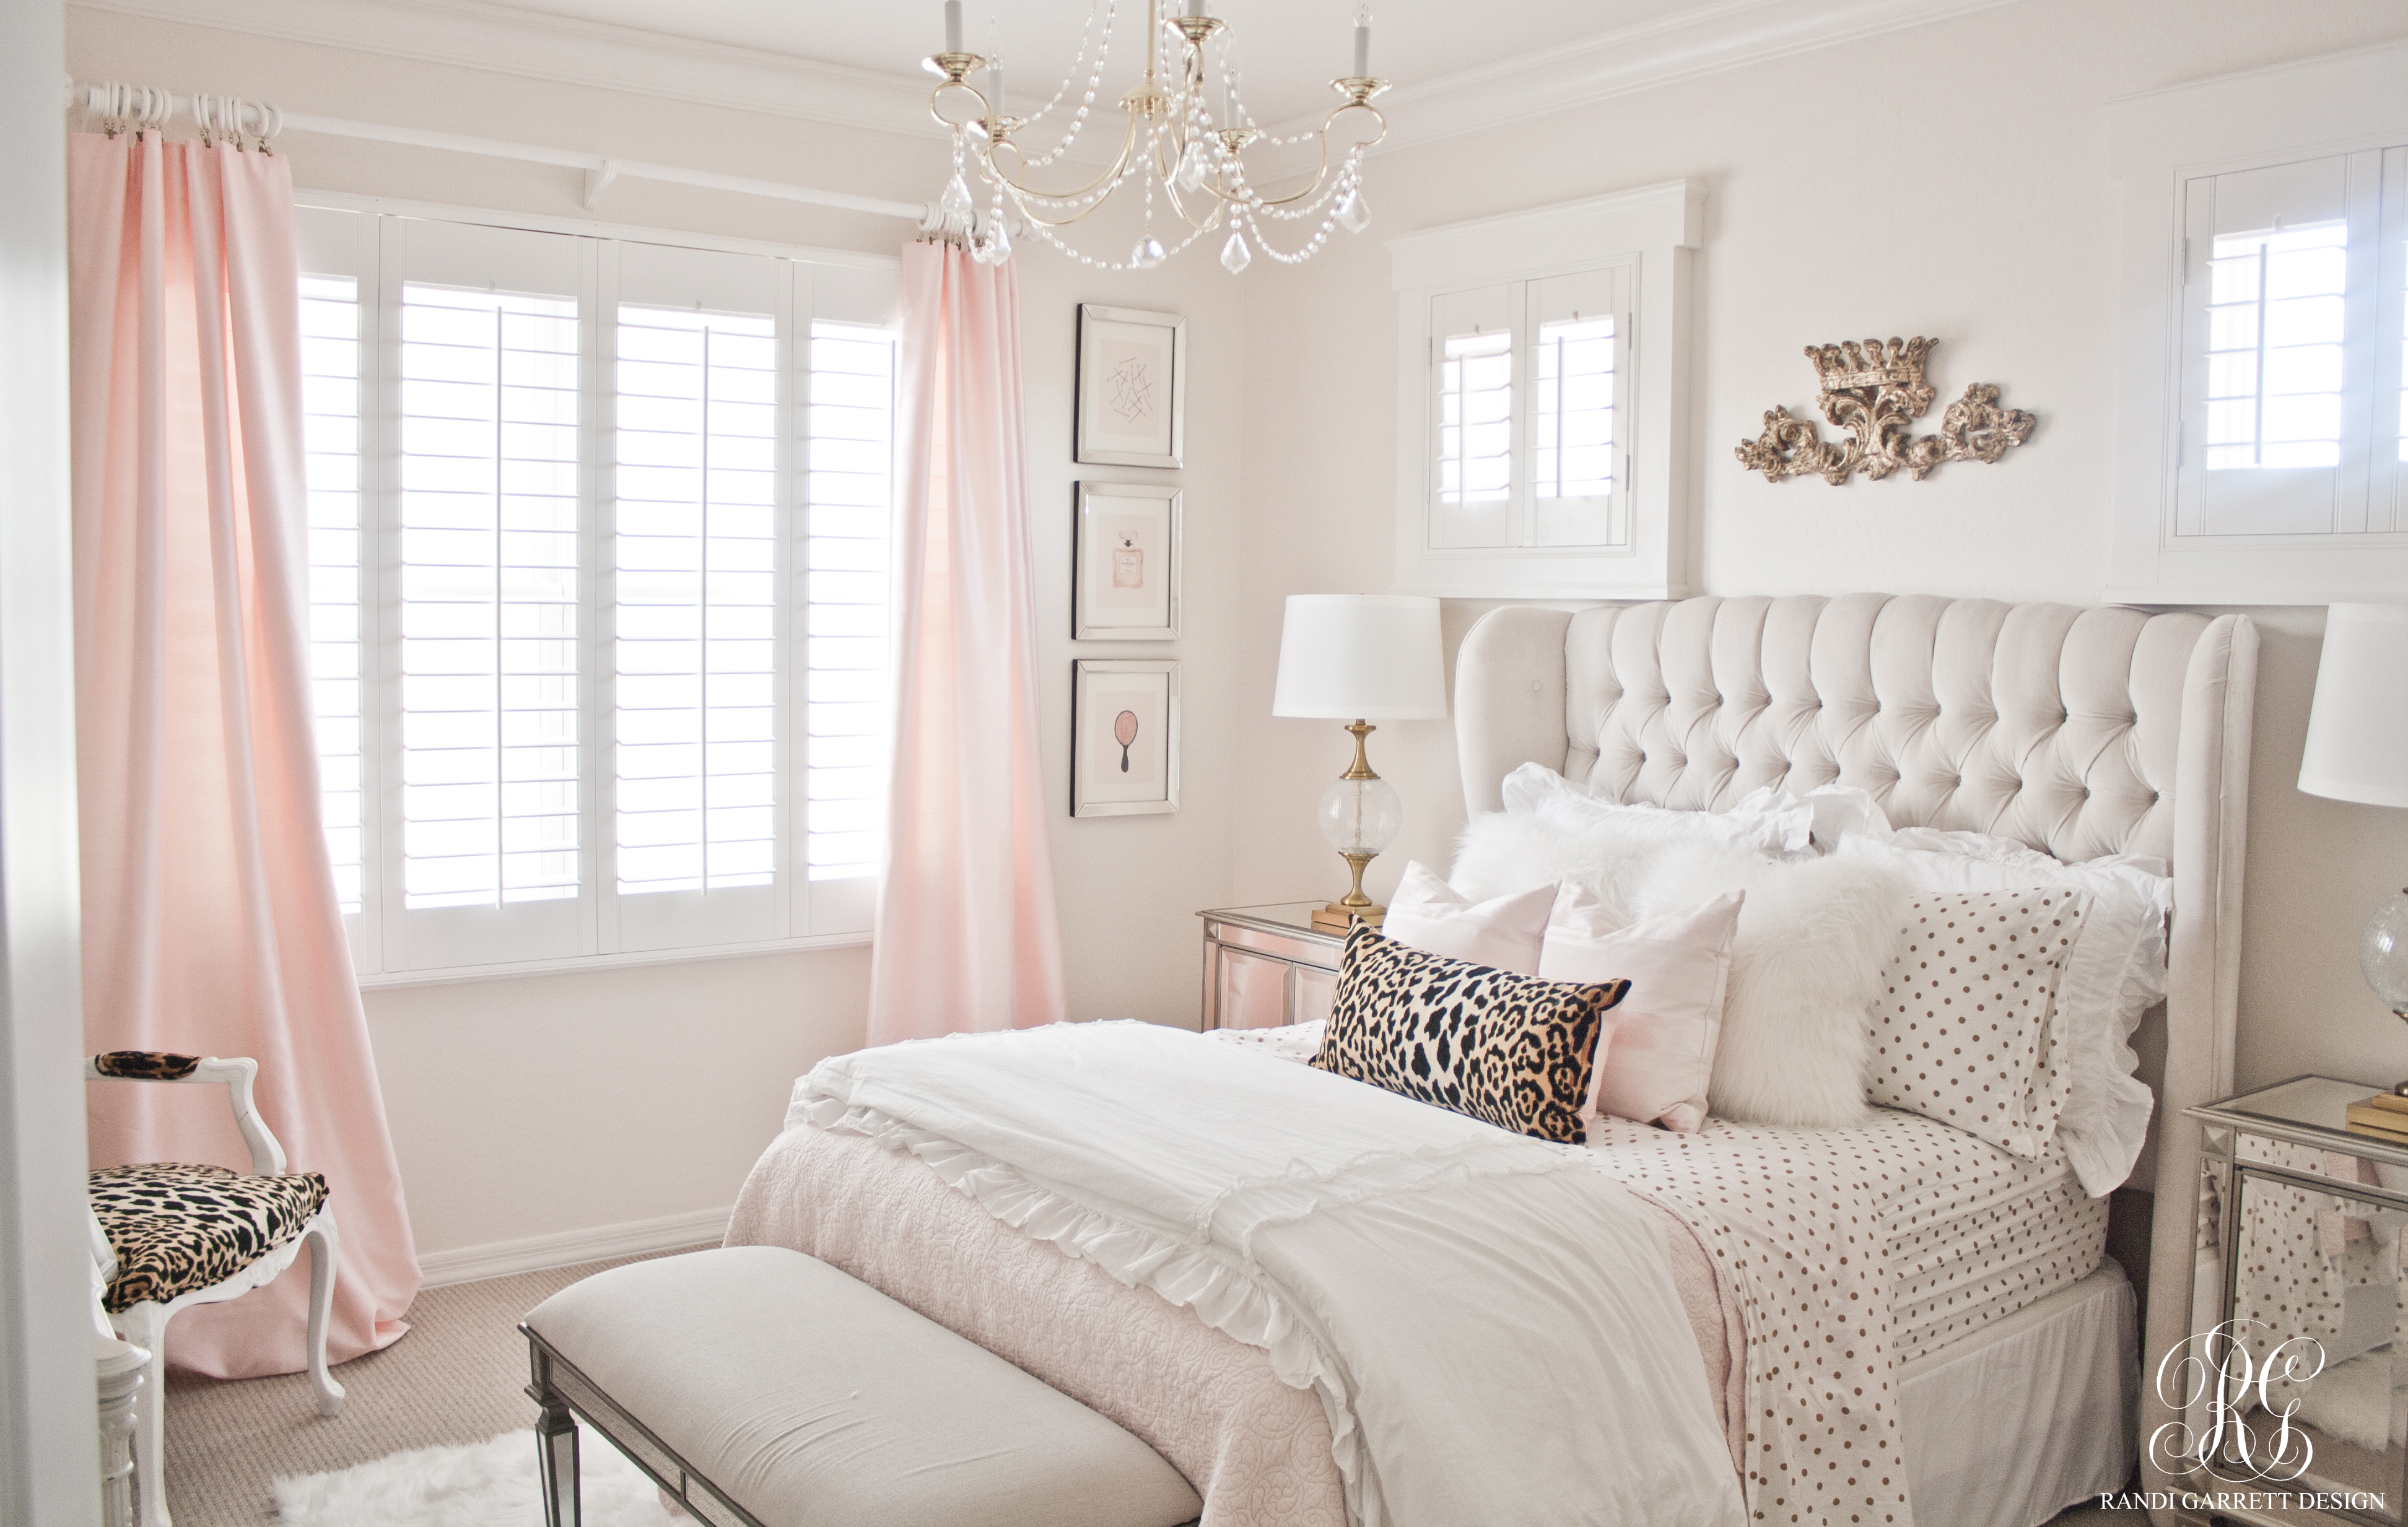 Pink and gold bedroom featuring tufted wingback